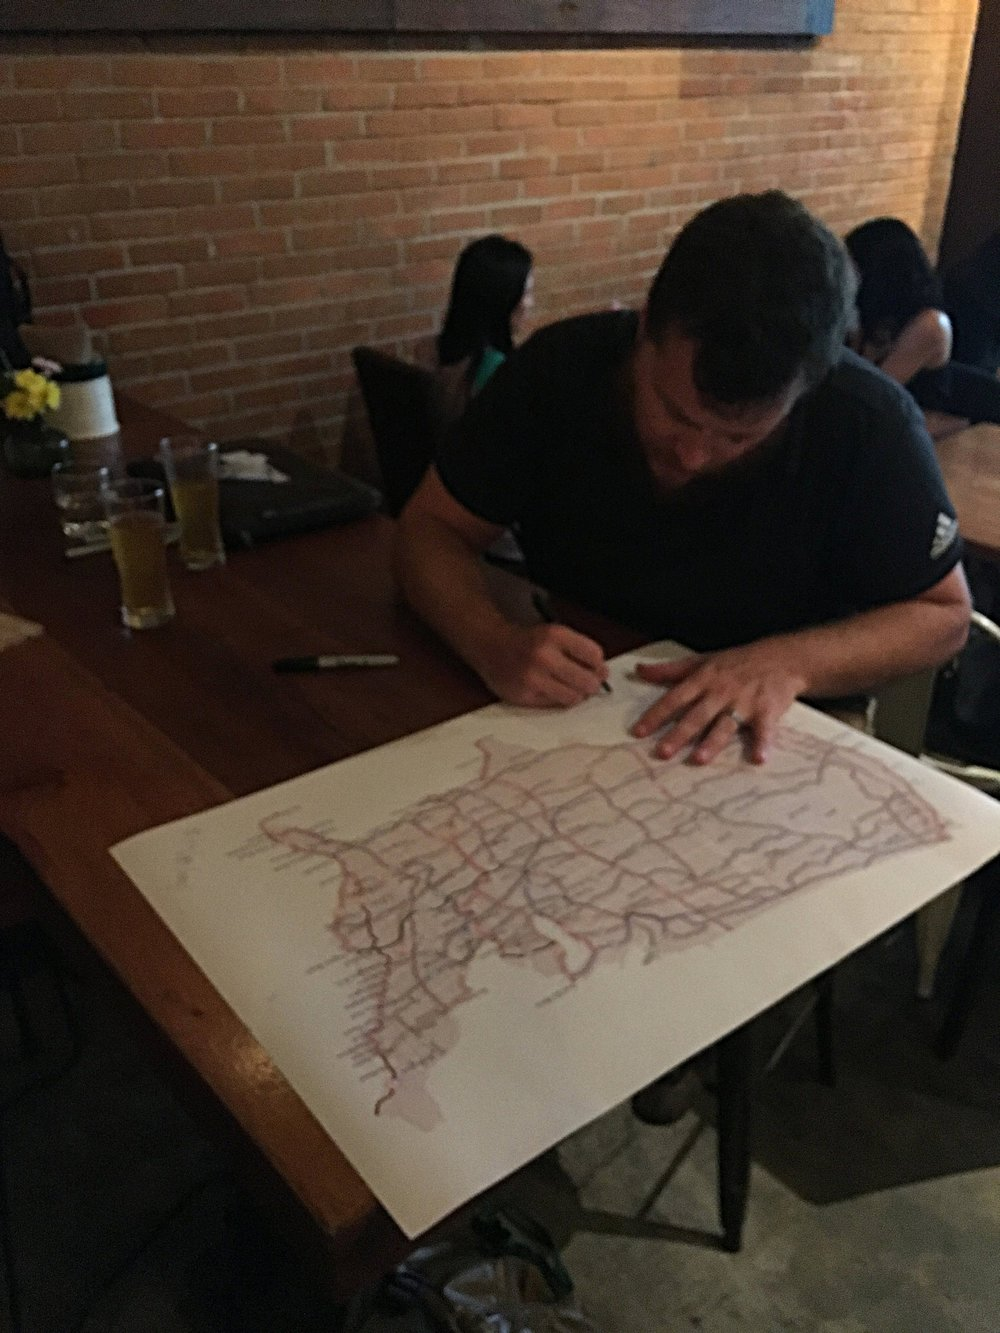 Using the United States Bicycle Route System (USBRS) Map to plan our routes over established bicycle trails.